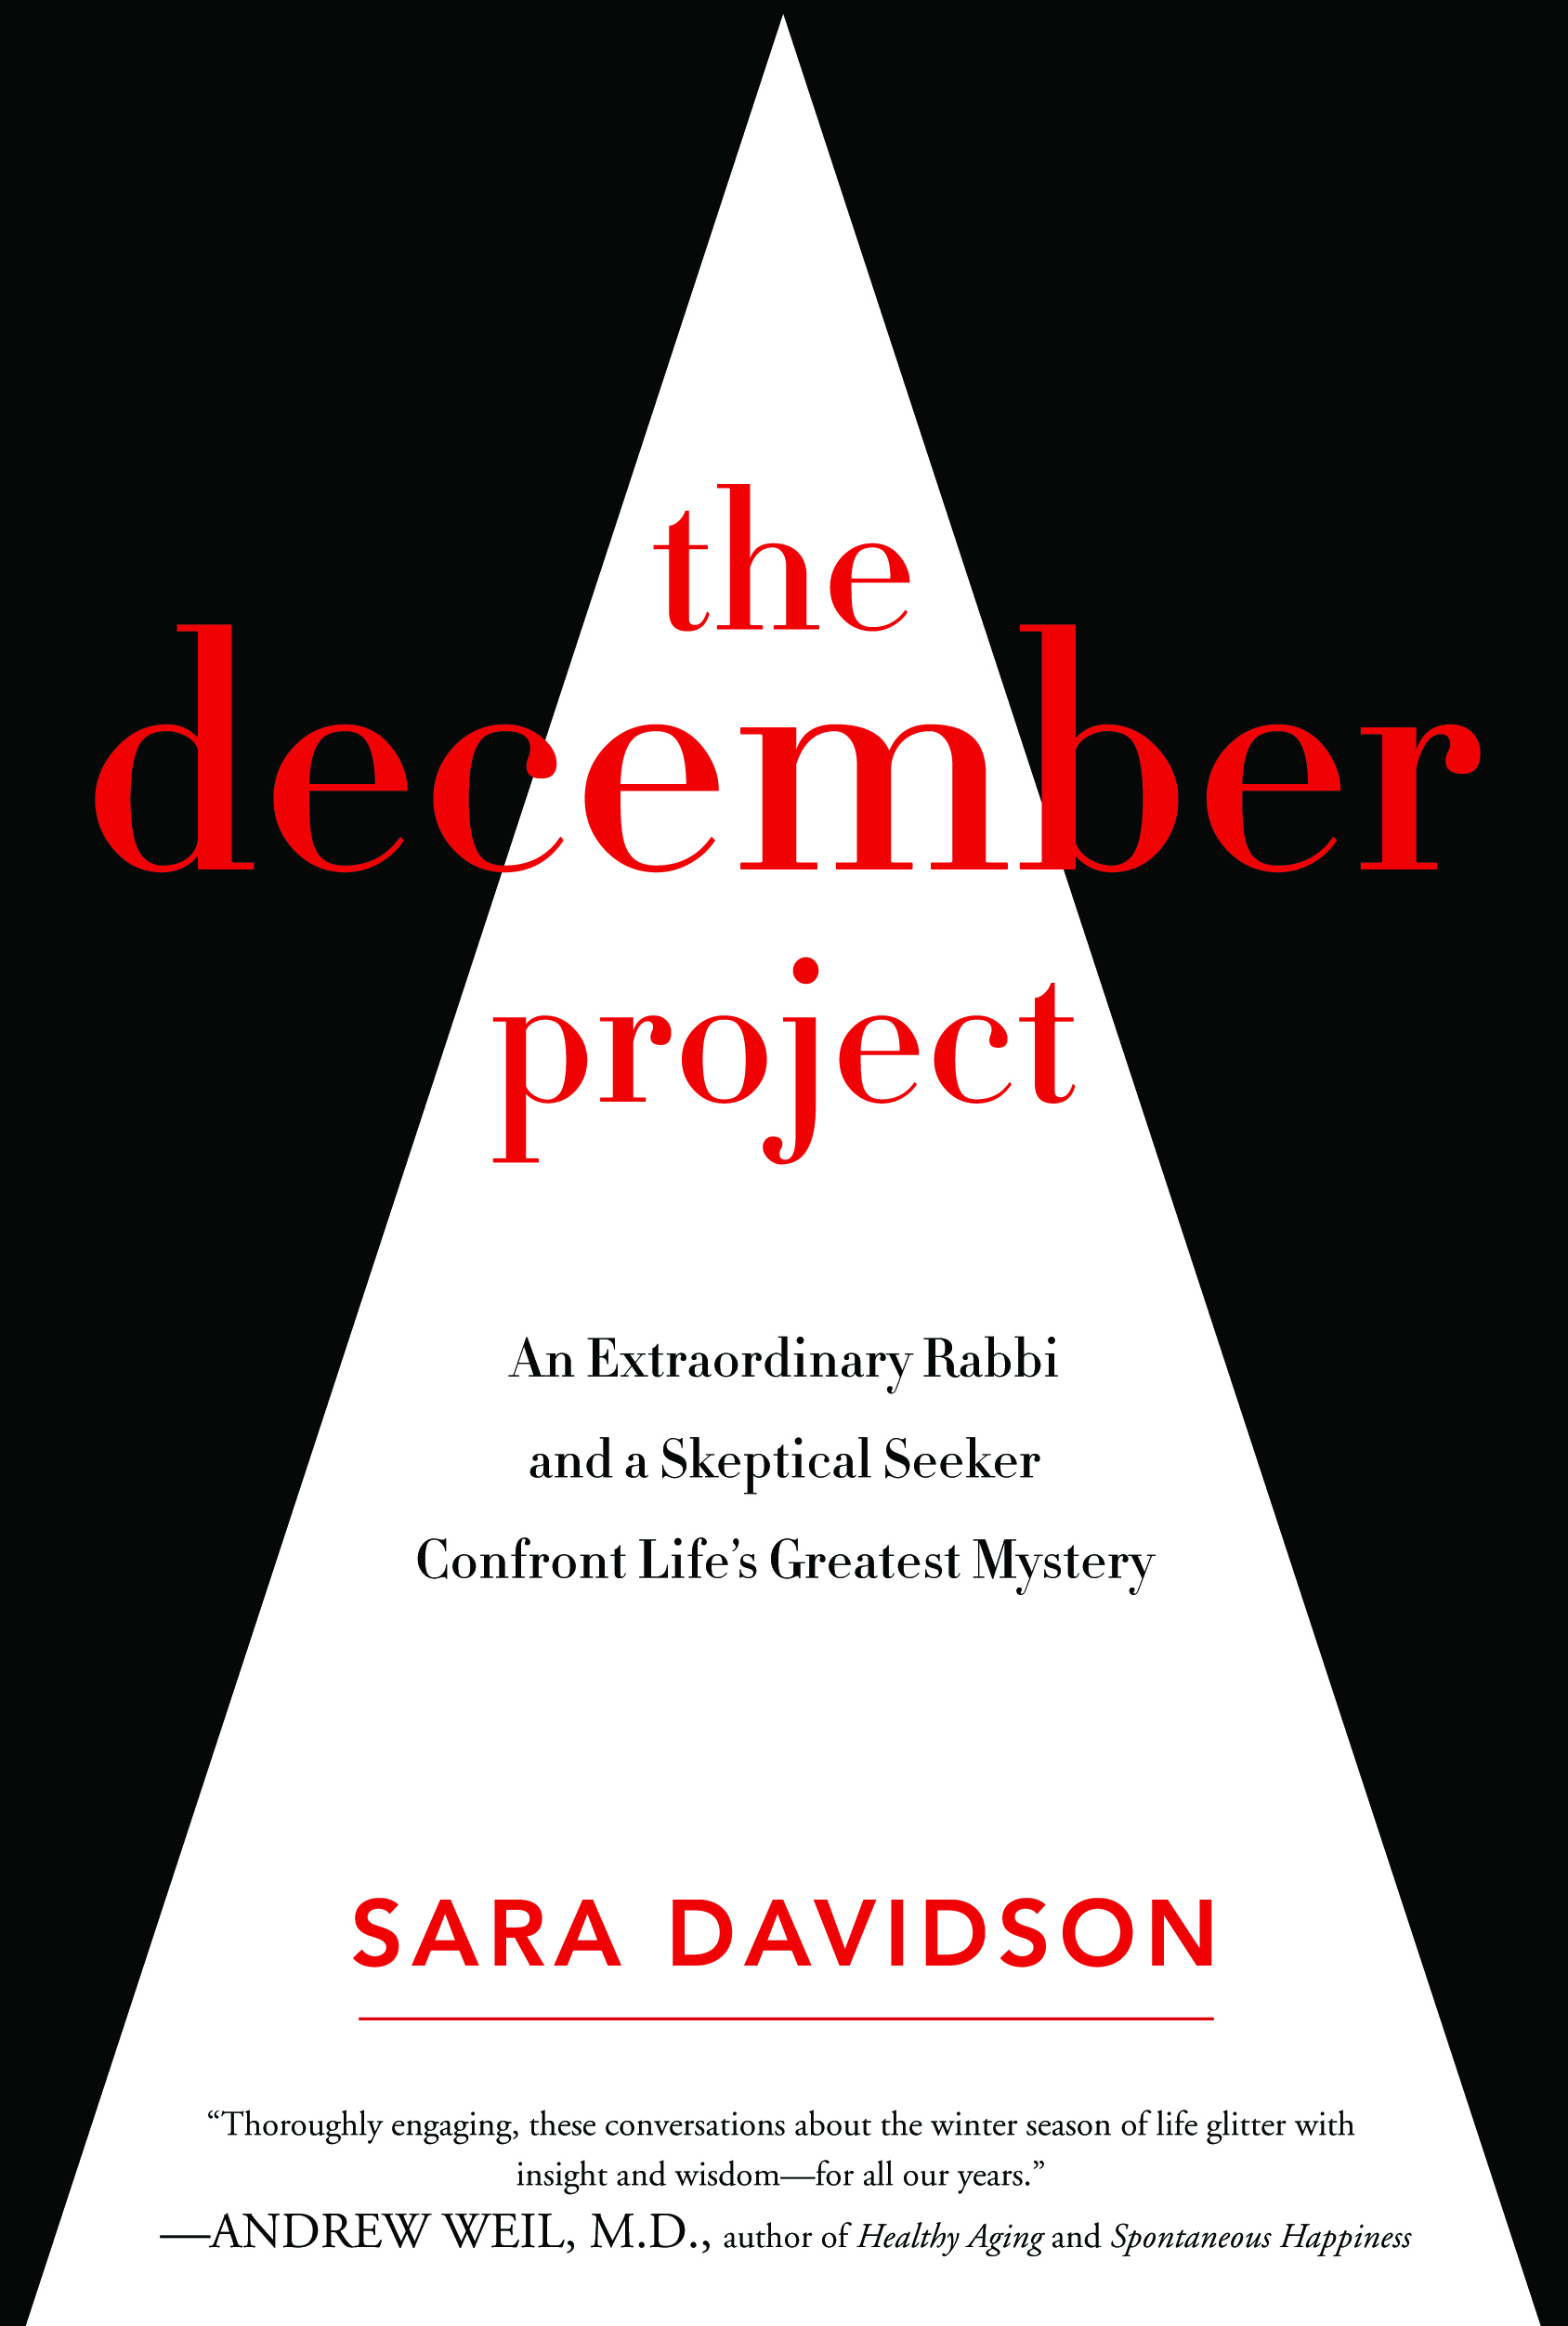 Photo: 'The December Project' book cover